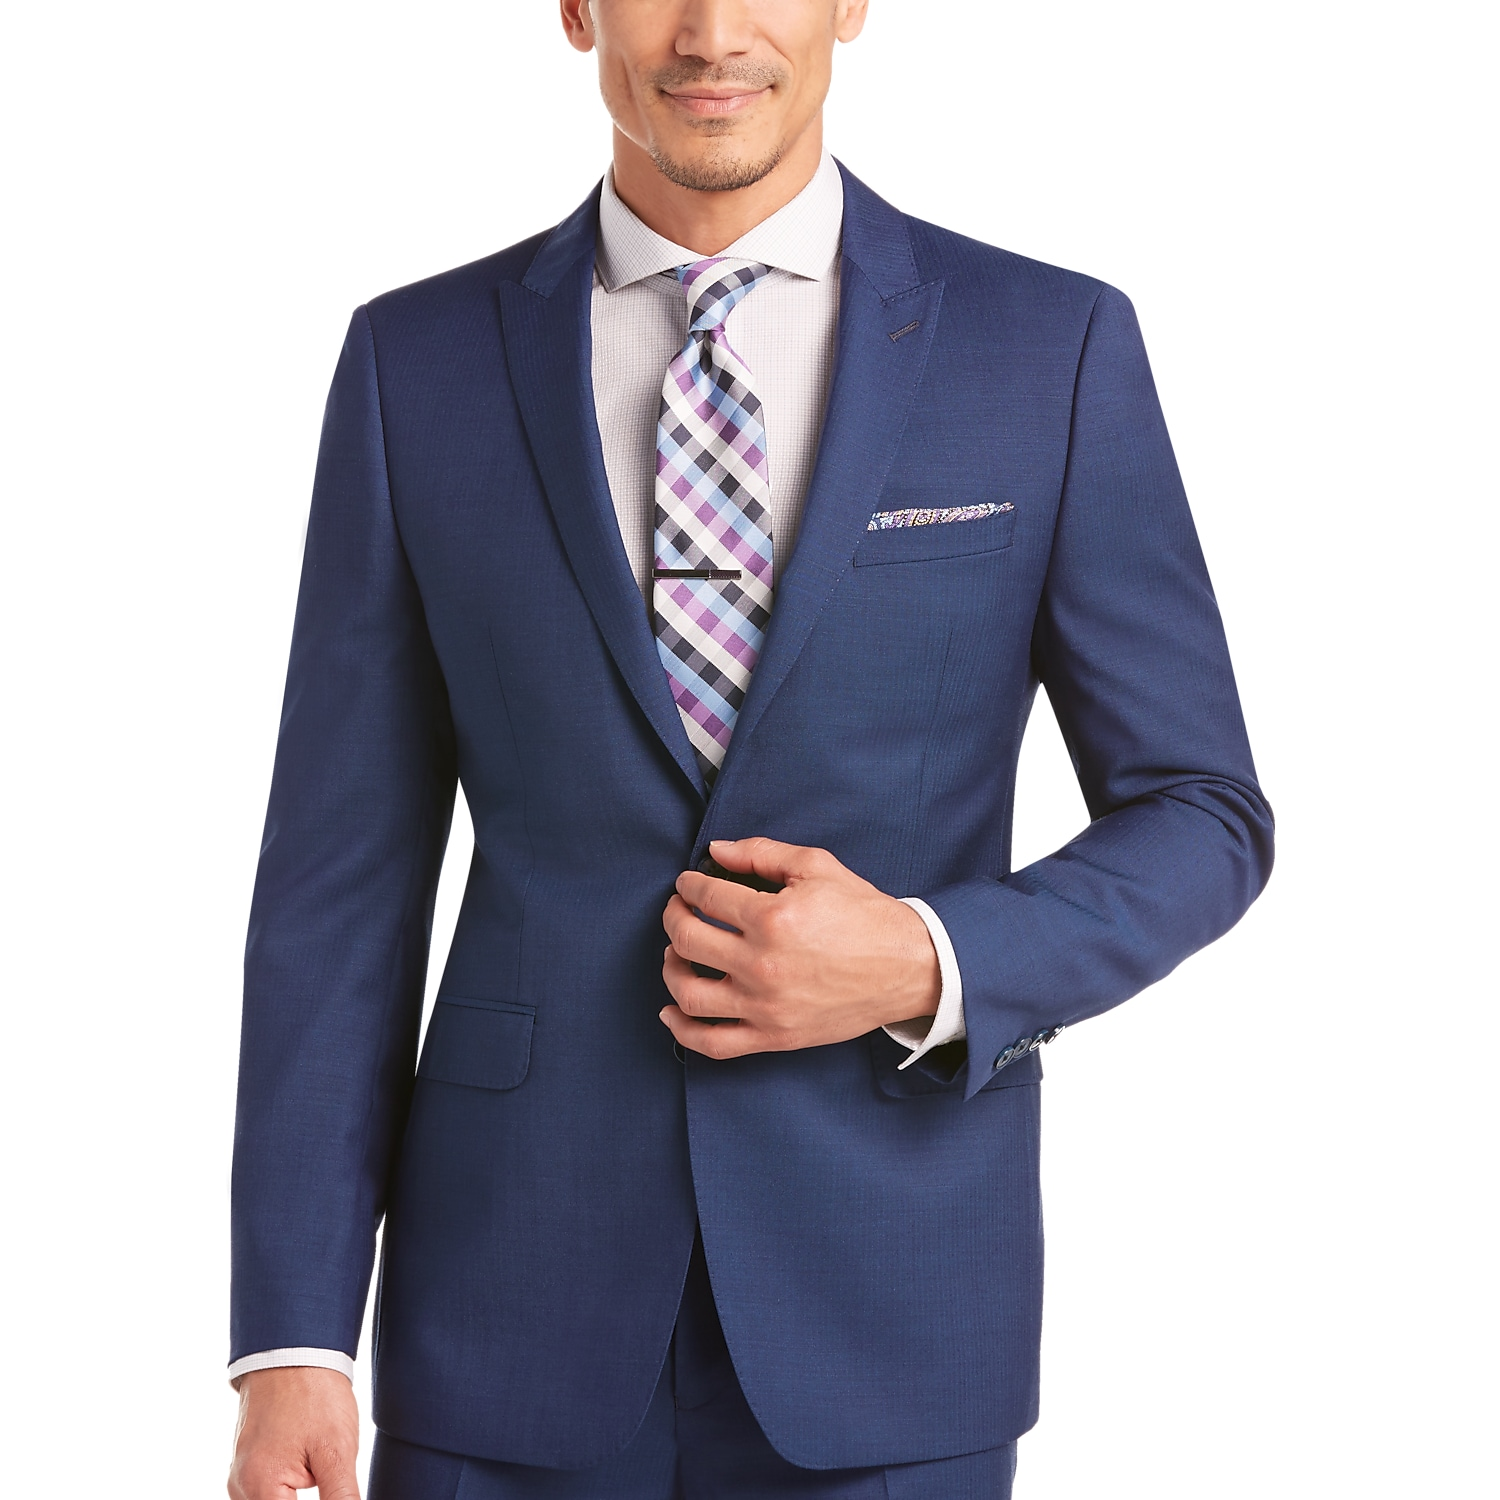 Calvin Klein Blue Extreme Slim Fit Suit - Men's Slim Fit | Men's ...